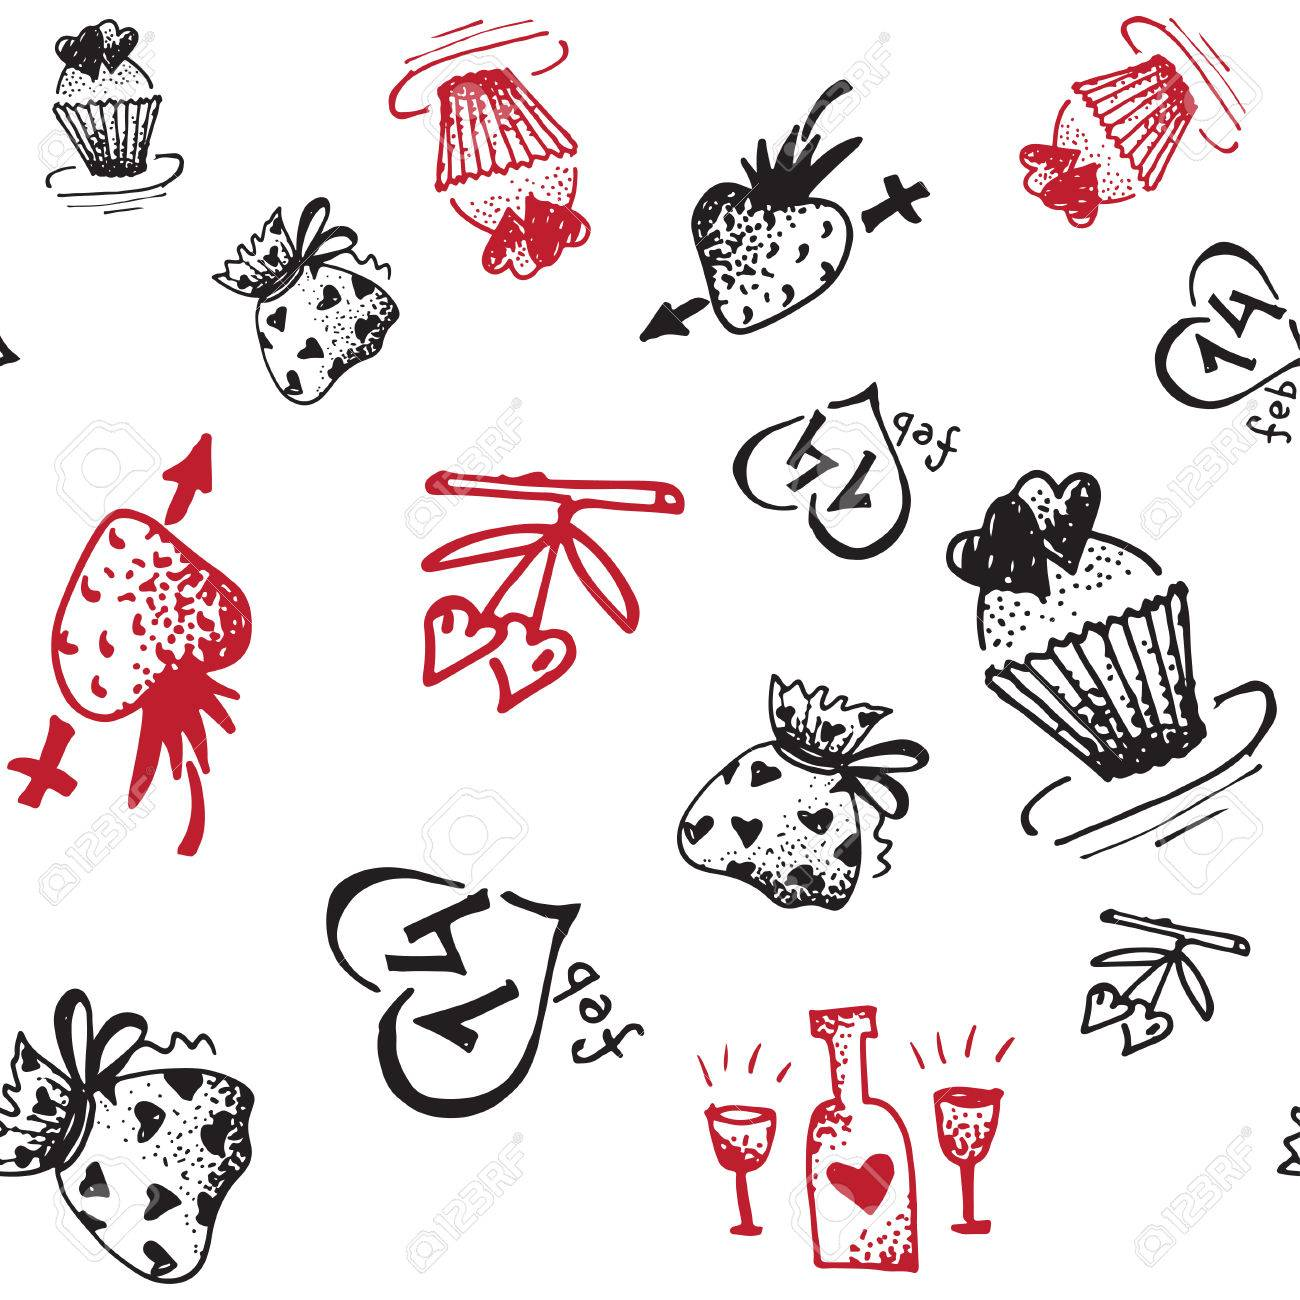 Retro Hand Drawn Sketches Seamless Background With Love Symbols